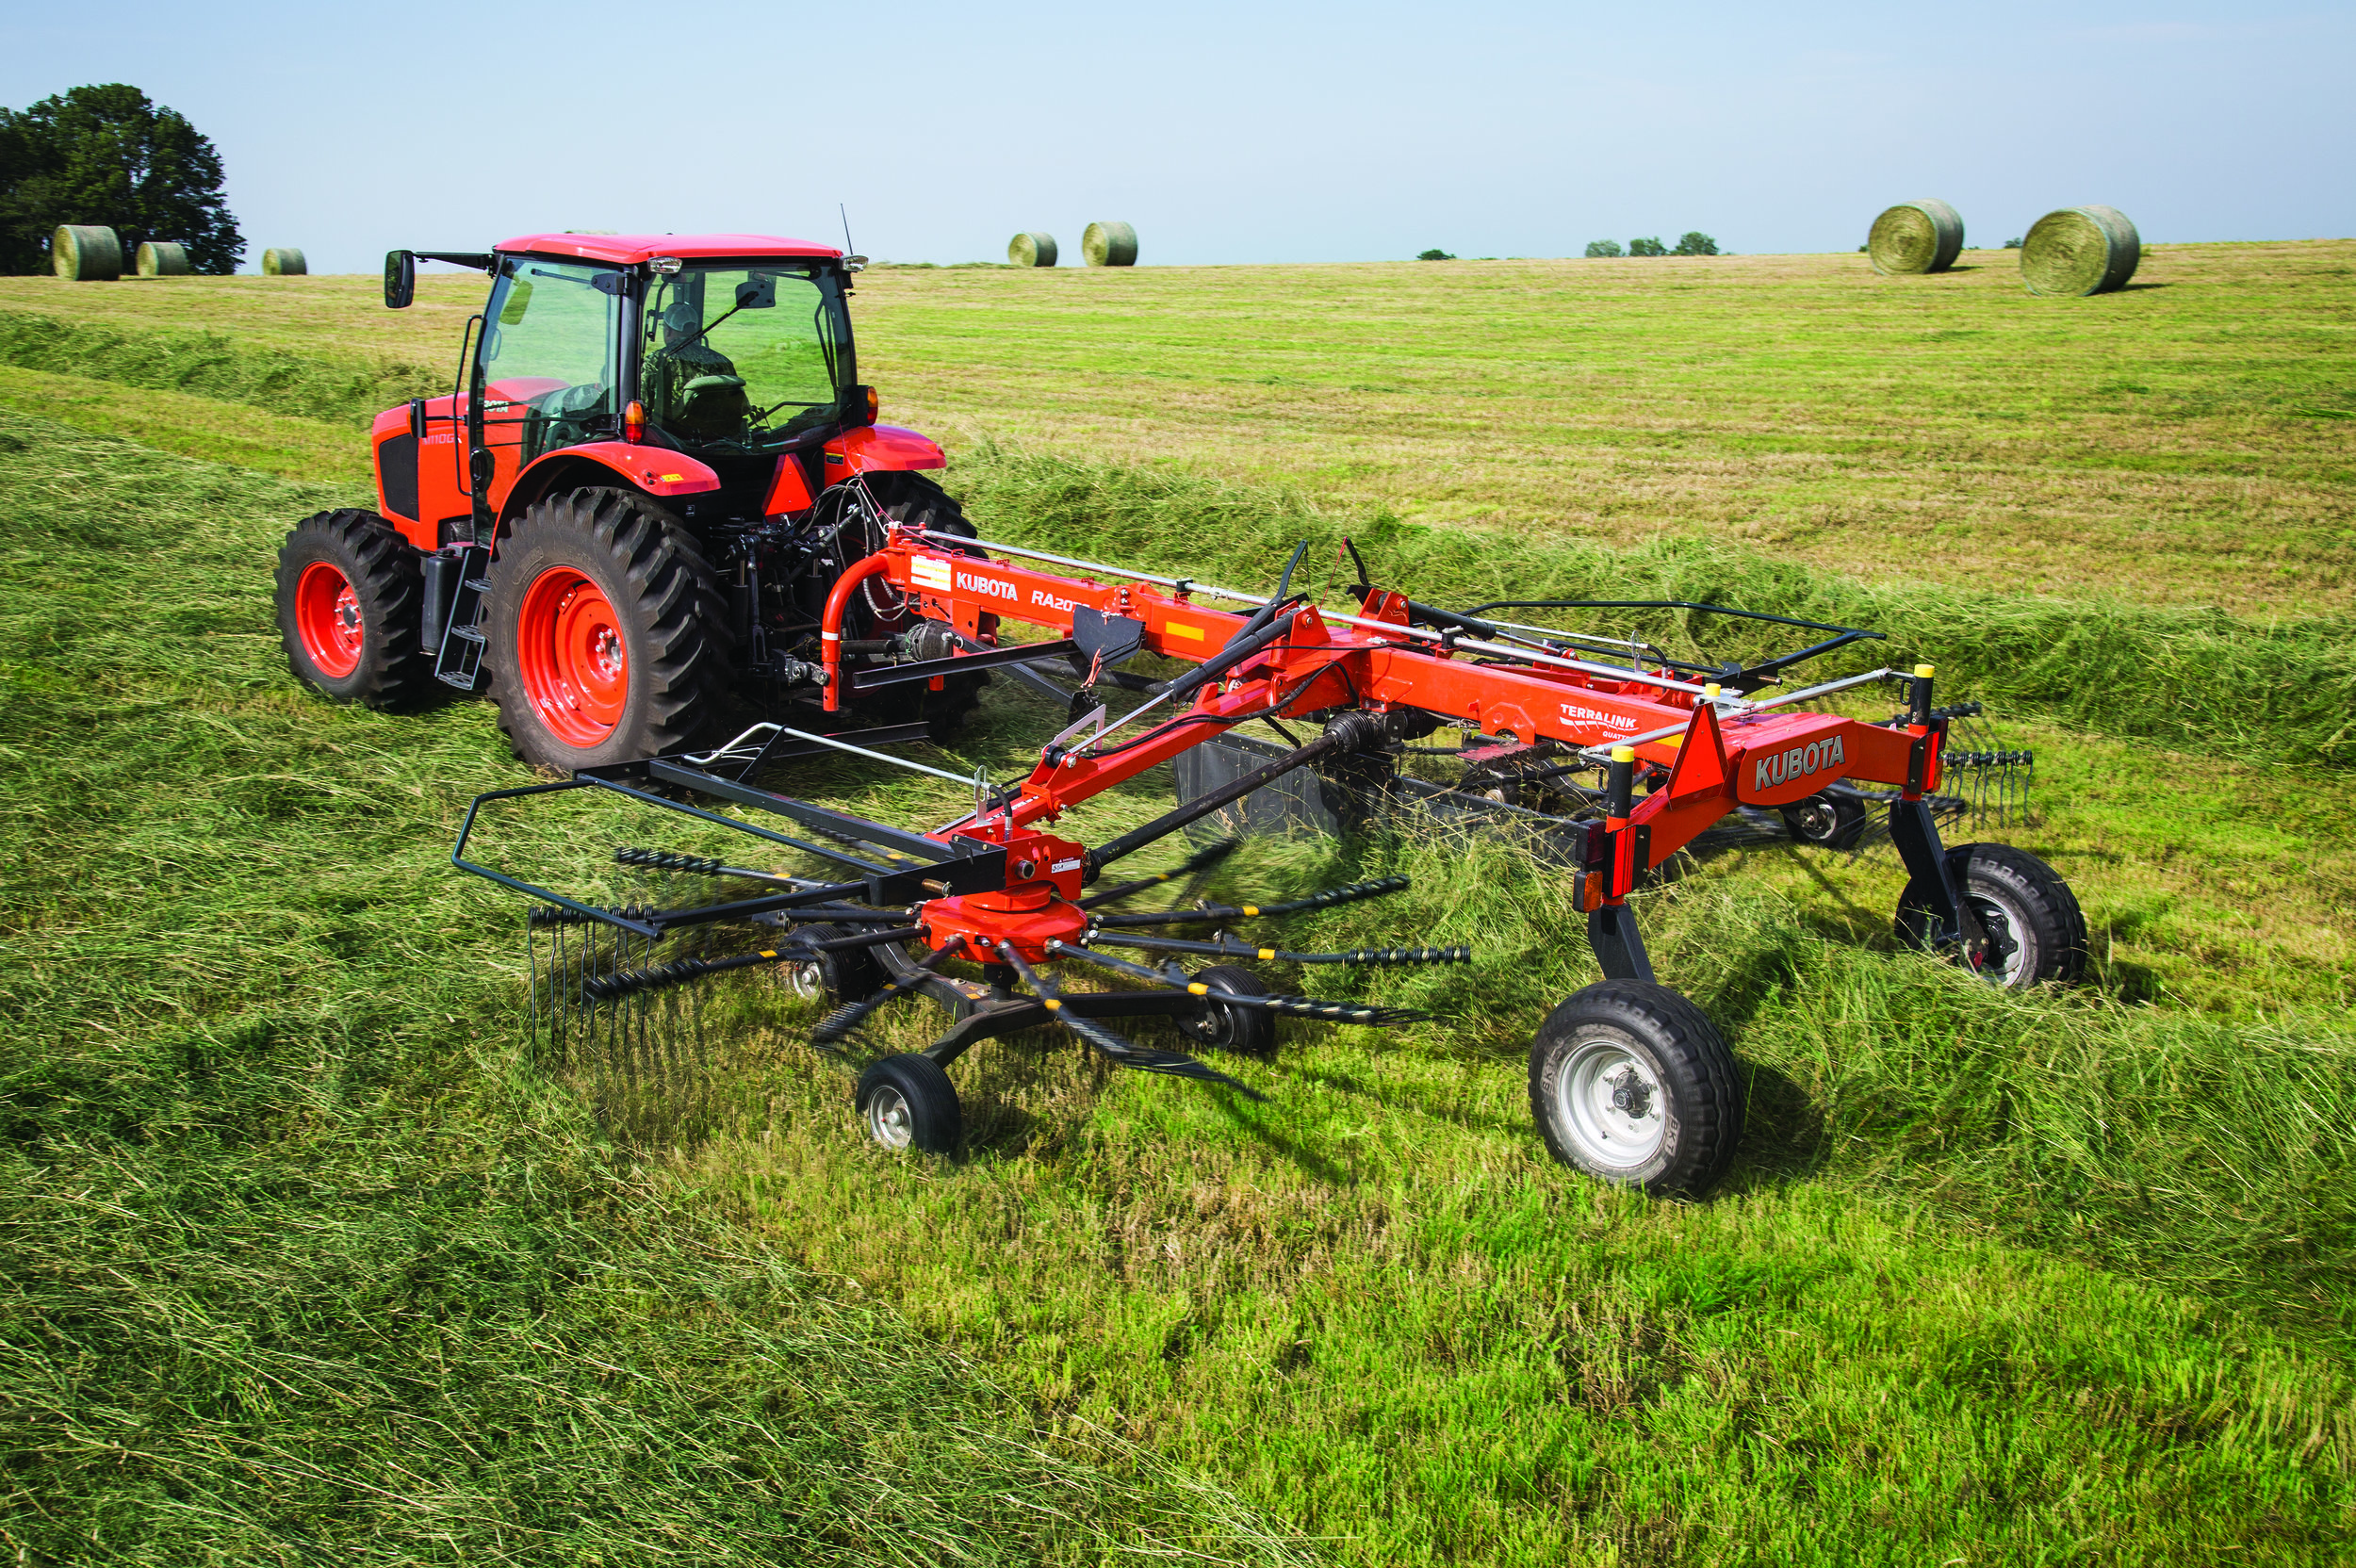 Hay & Farm Equipment - From disk mowers to bale wrappers, our farm implements are made to meet farmer's demands.